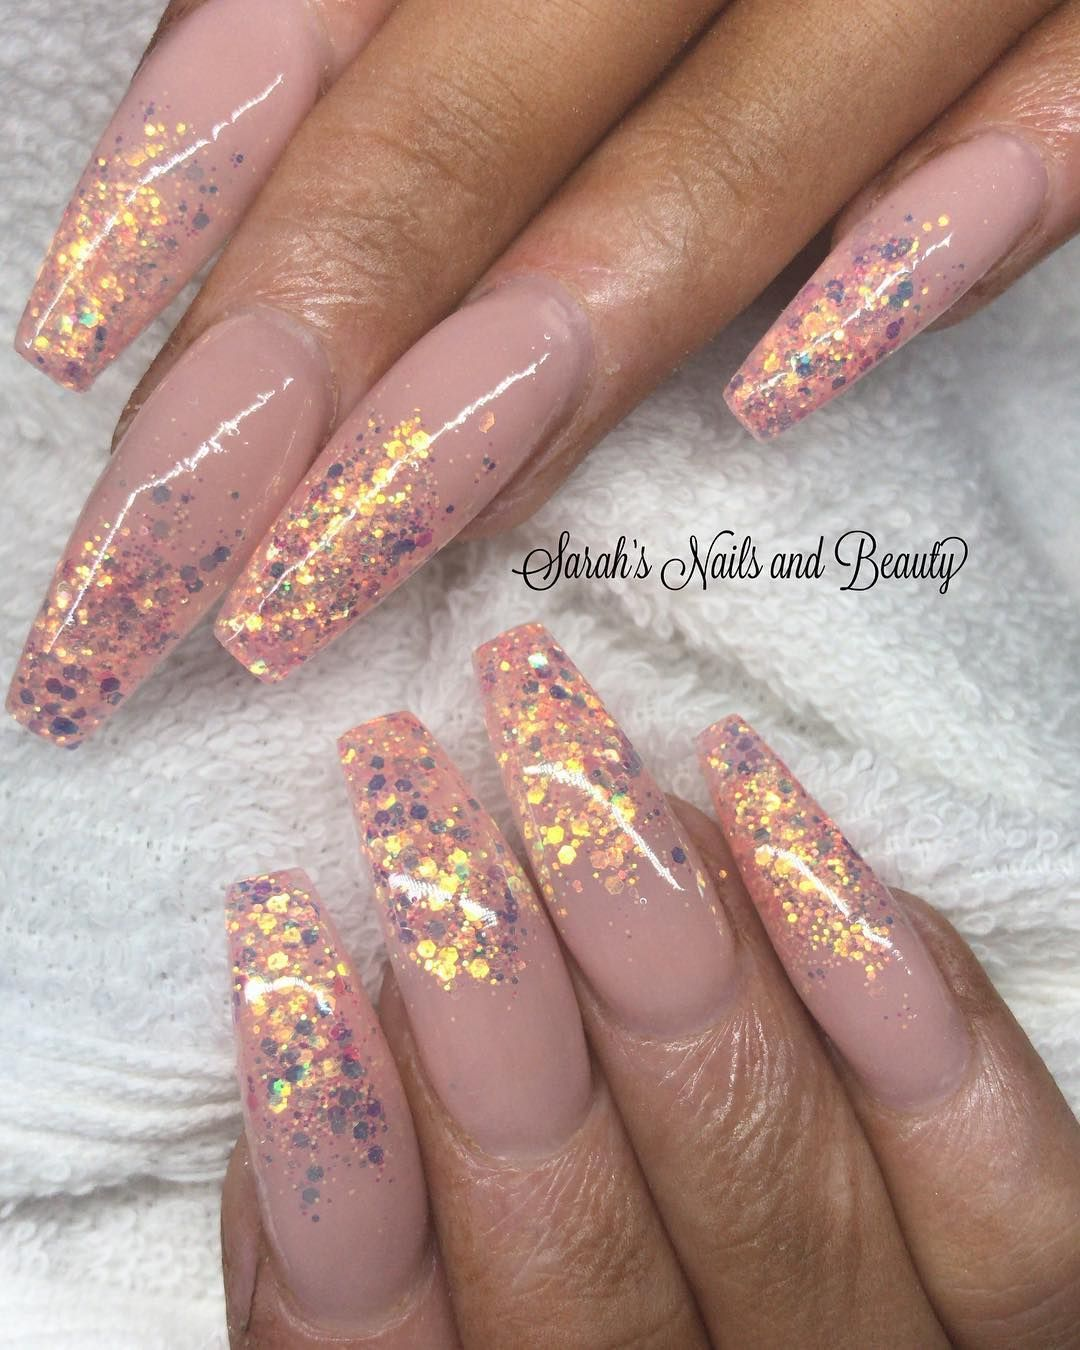 Magpie Beauty On Instagram Magpie Glitter Flora Www Magpiebeauty Co Uk Thank You Sarahnailandbeauty Gel Nails Gel Nail Polish Nail Polish